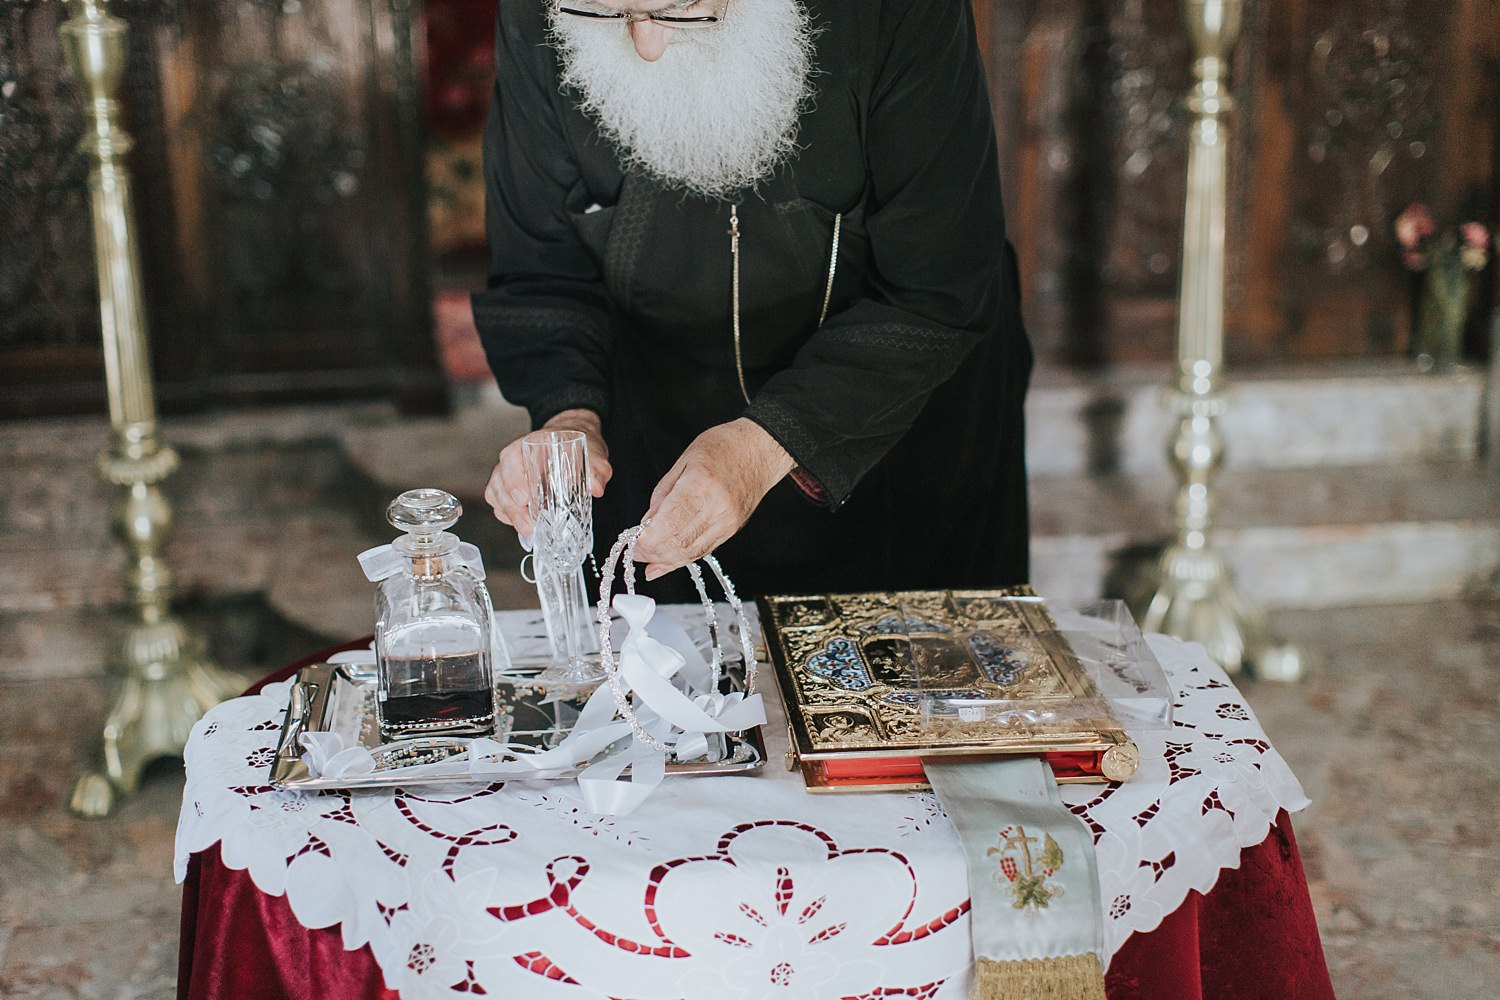 orthodox priest prepares the wedding sacrament